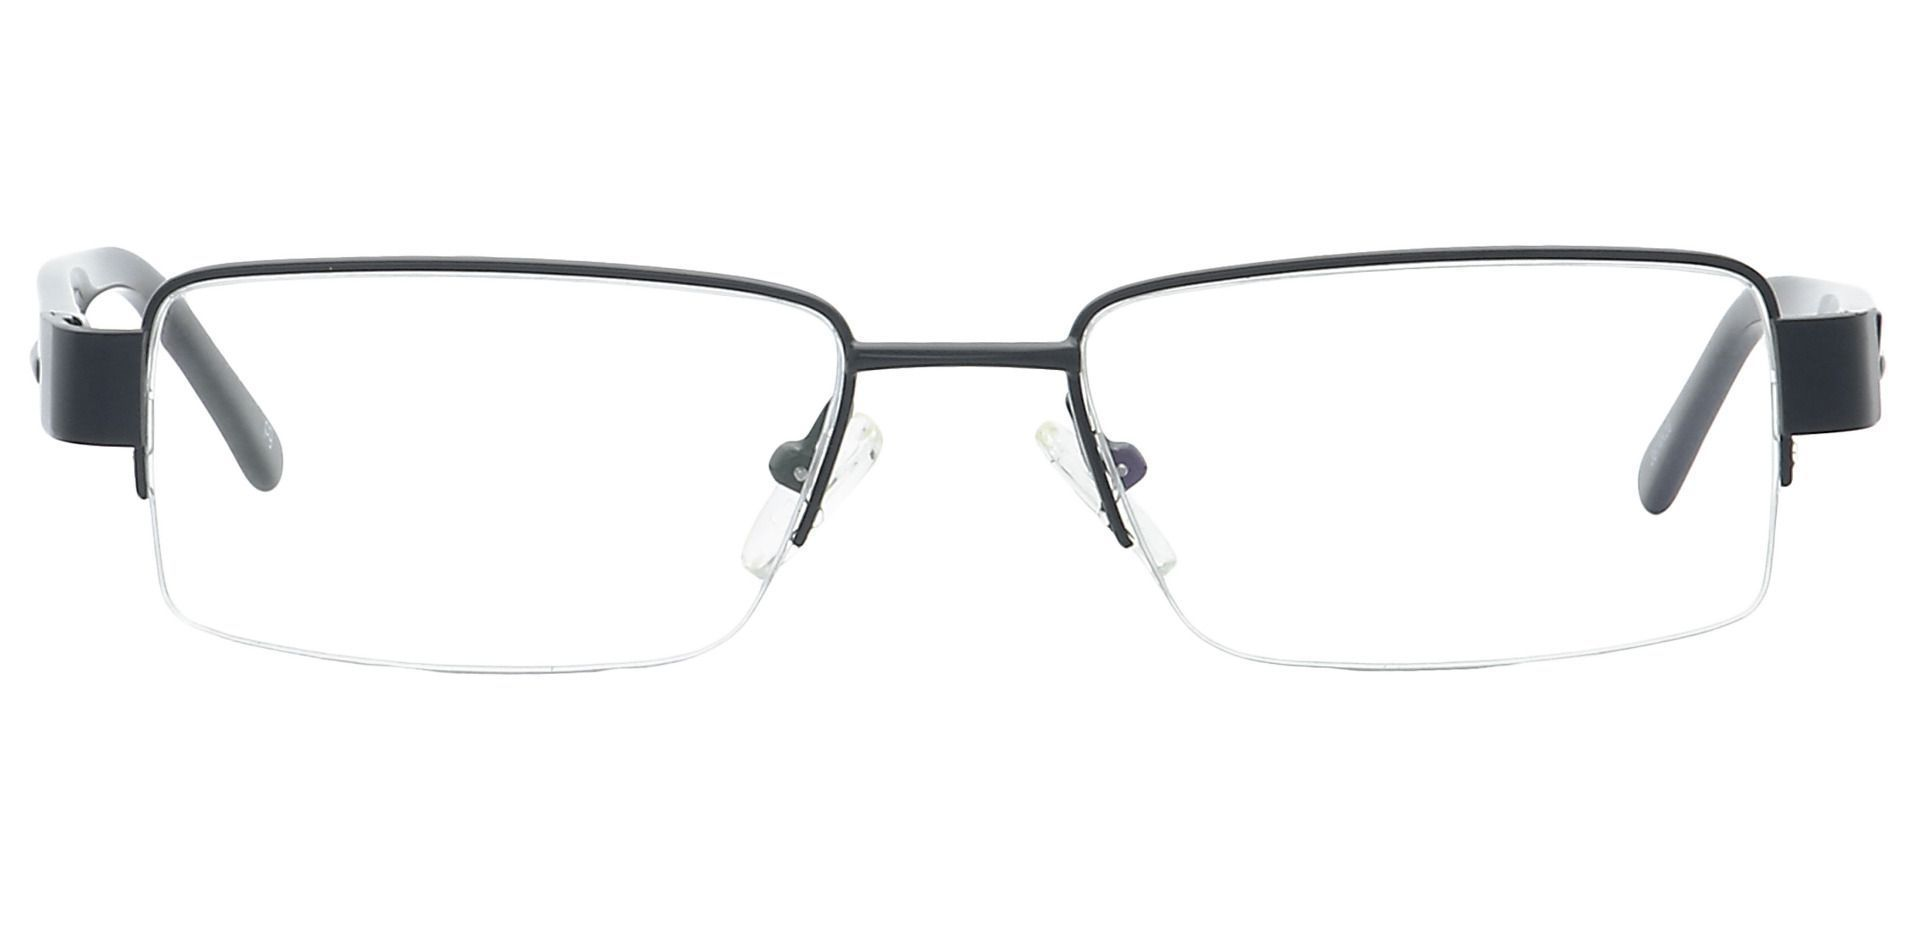 Roger Rectangle Prescription Glasses - Black